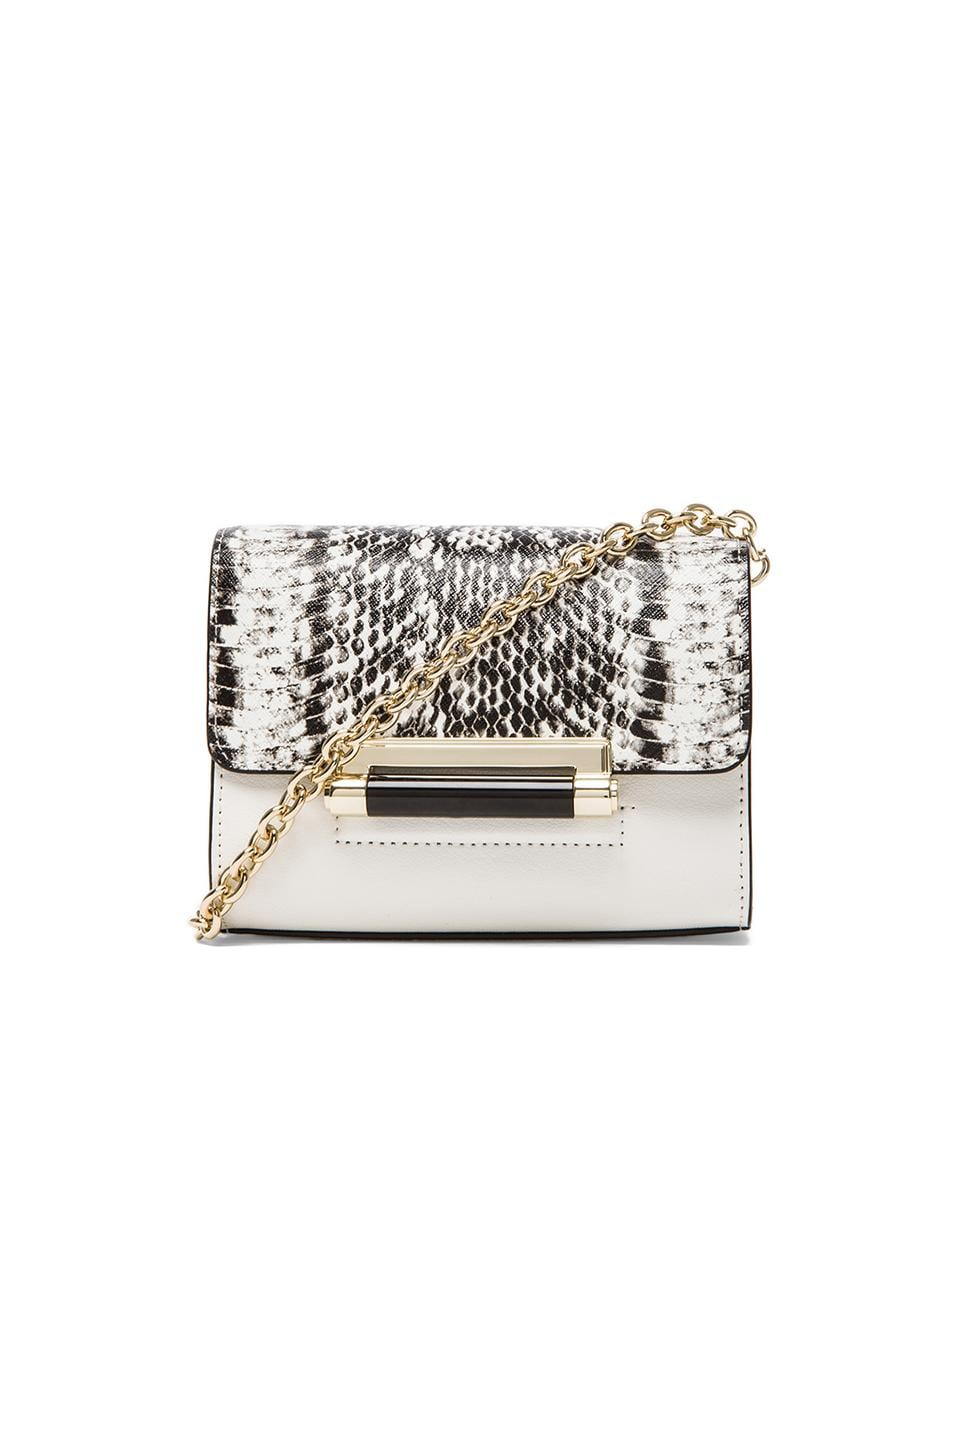 Diane von Furstenberg Highline Micro Mini Crossbody in White & Black Snake